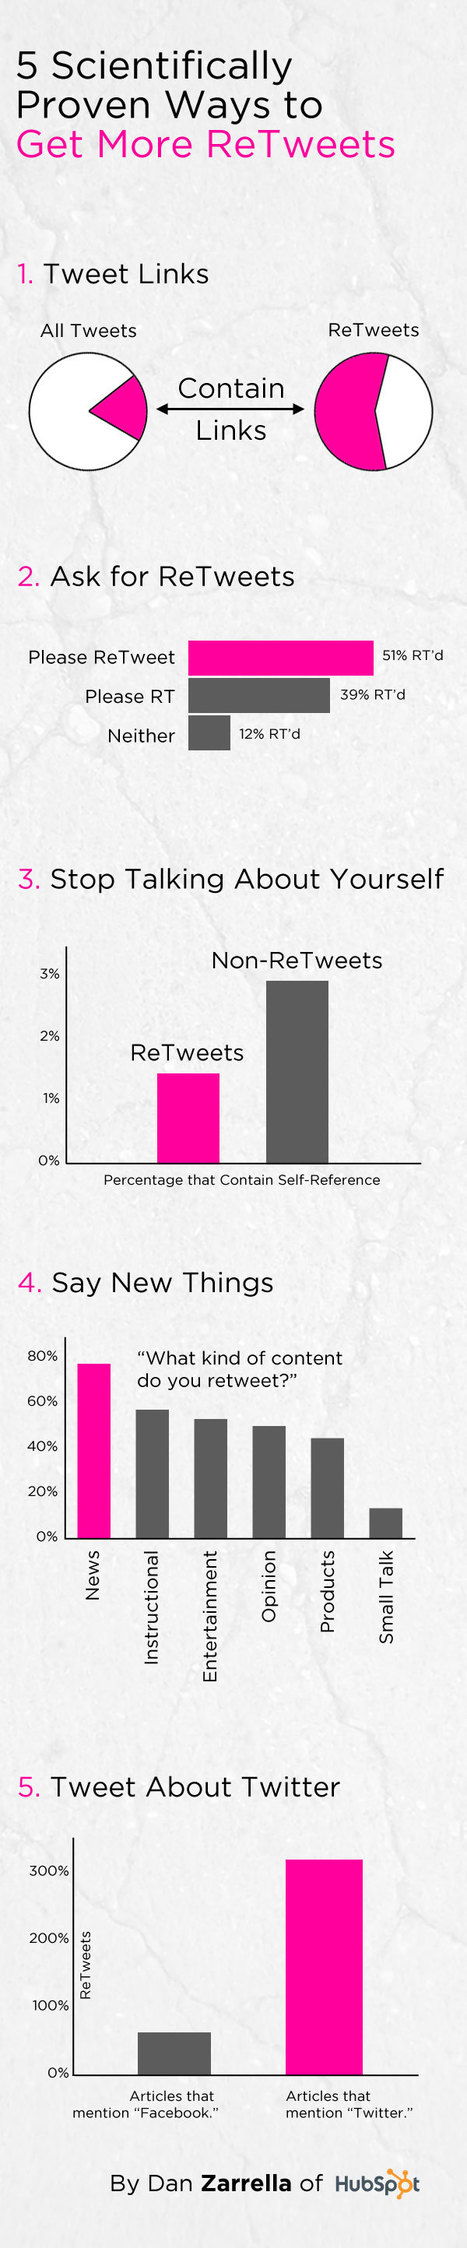 [Infographic] 5 Scientifically Proven Ways to Get More ReTweets | Dan Zarrella | Cheeky Marketing | Scoop.it